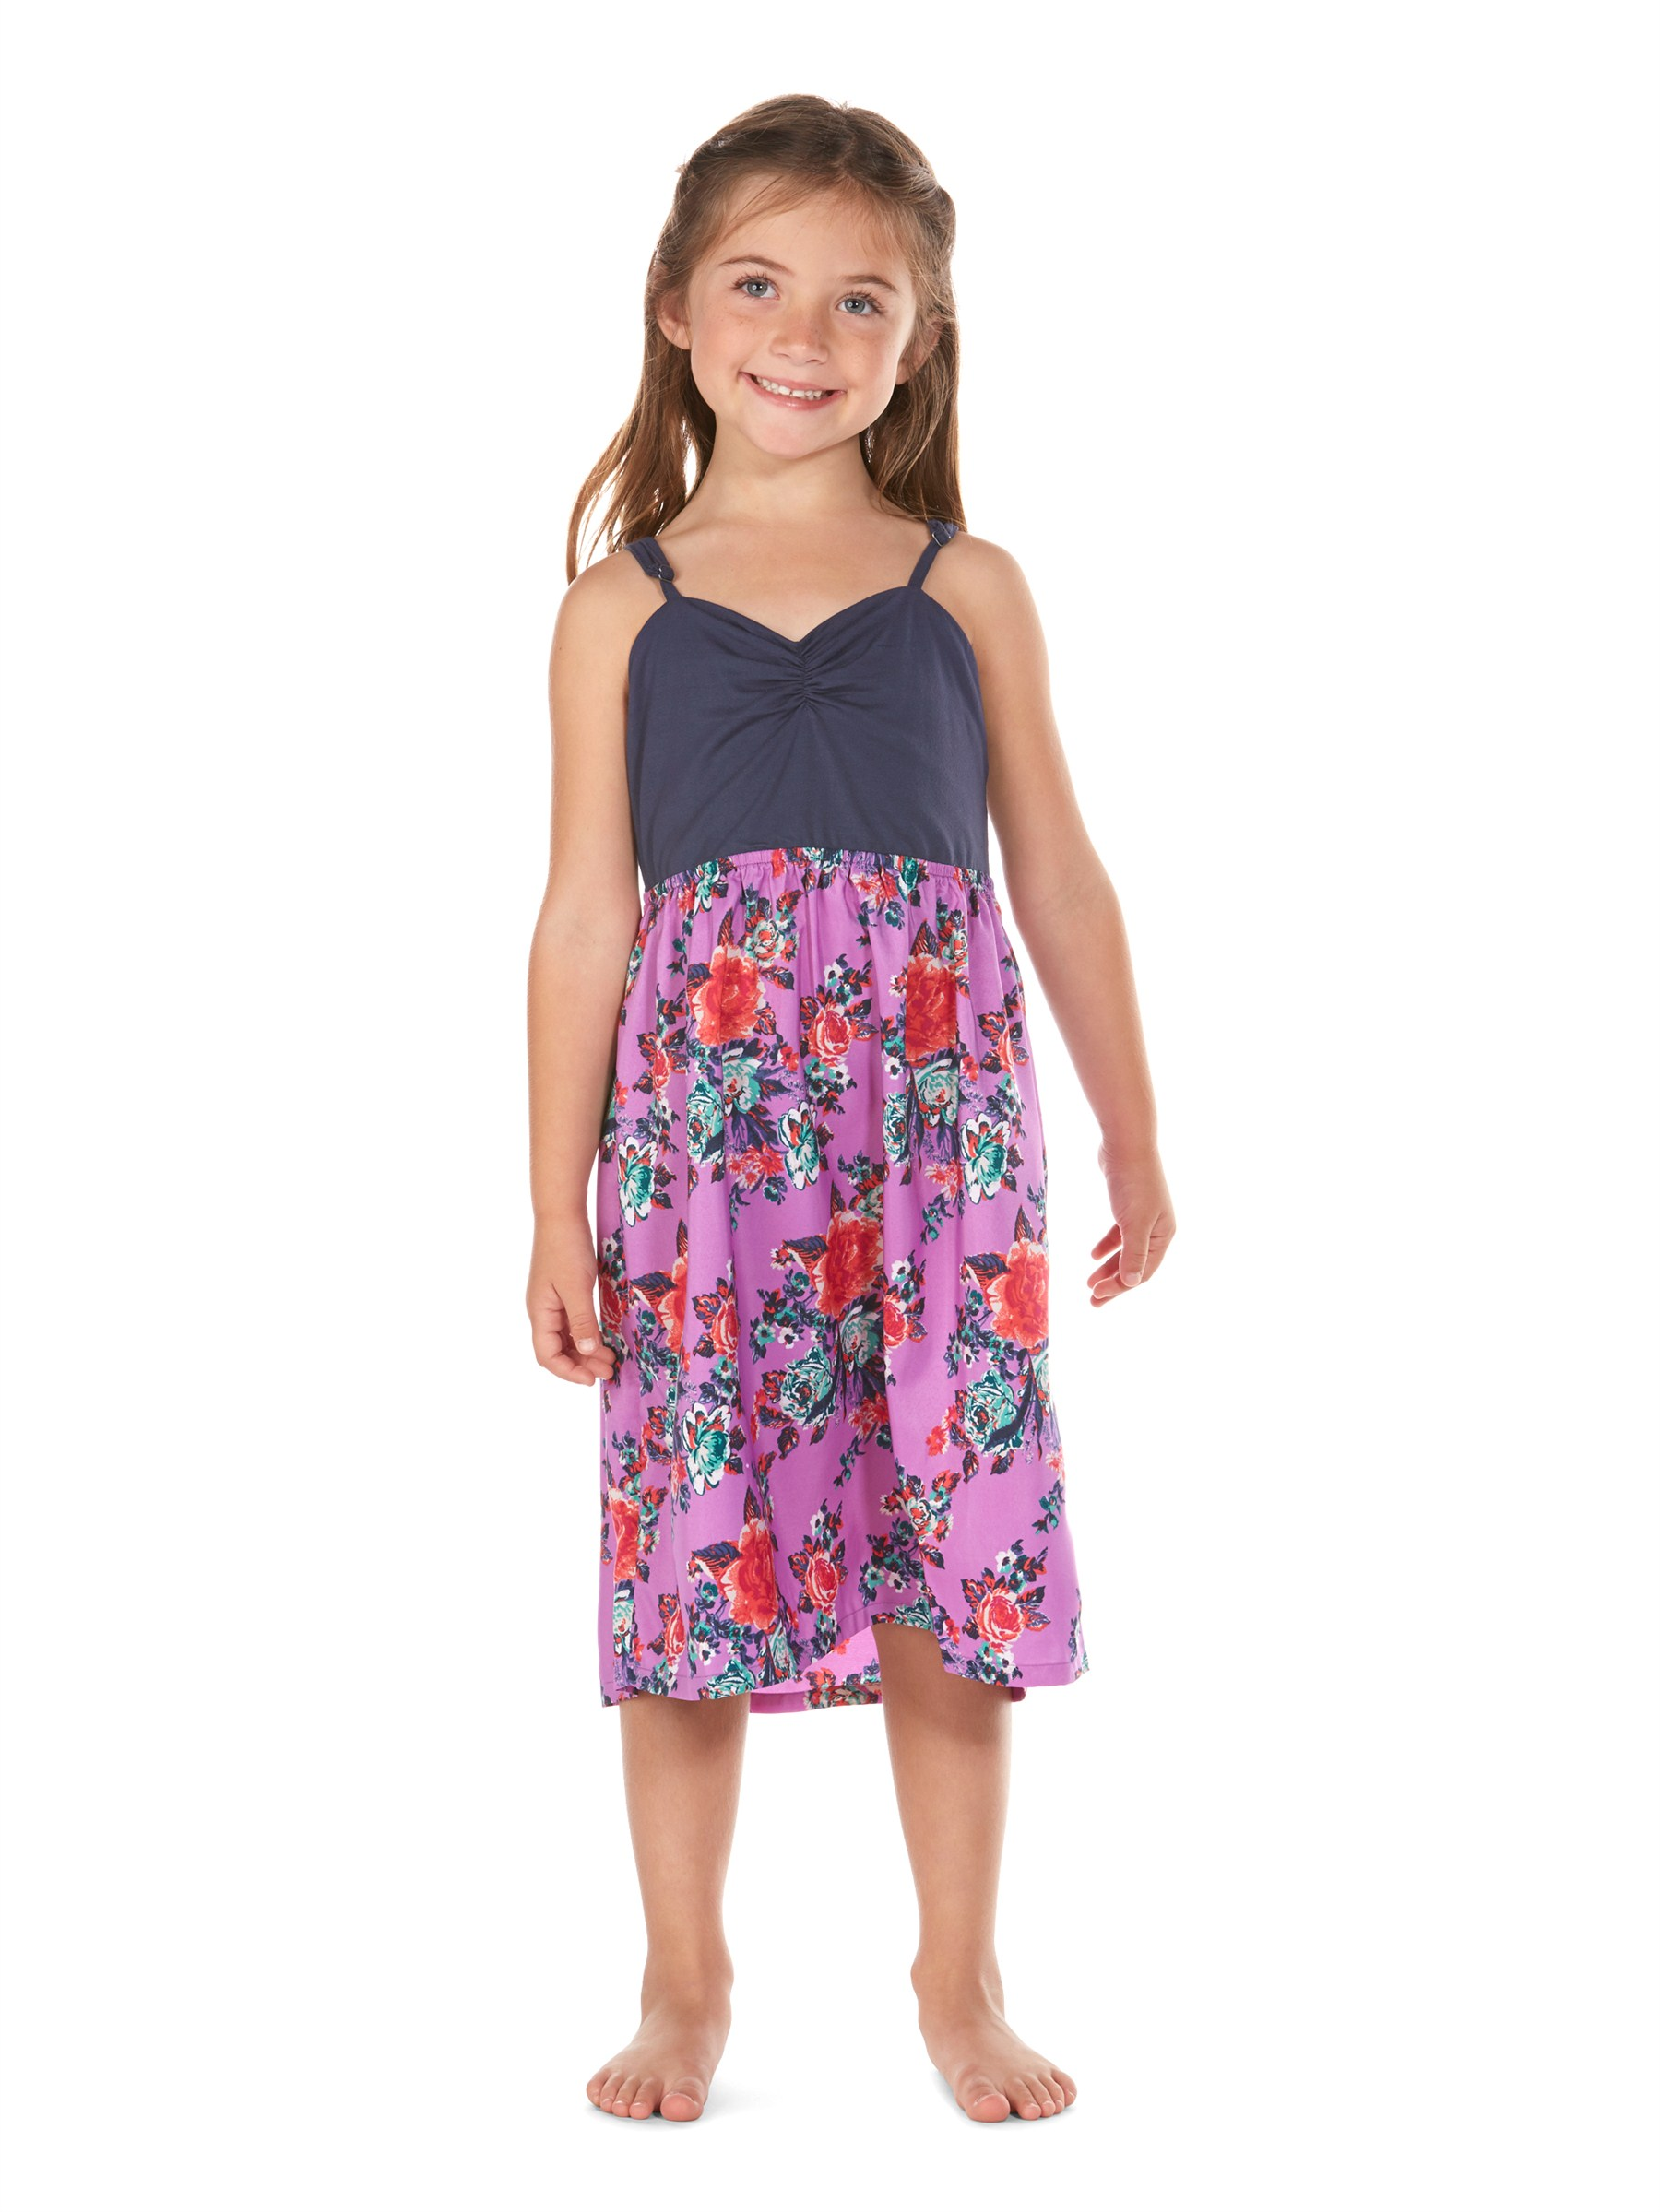 Rainbow Shops - Fashion at Prices You'll Love. Women's, Plus Size and Kids Clothing, Shoes and Accessories. Everyday Free Shipping and Free Returns to our + stores.